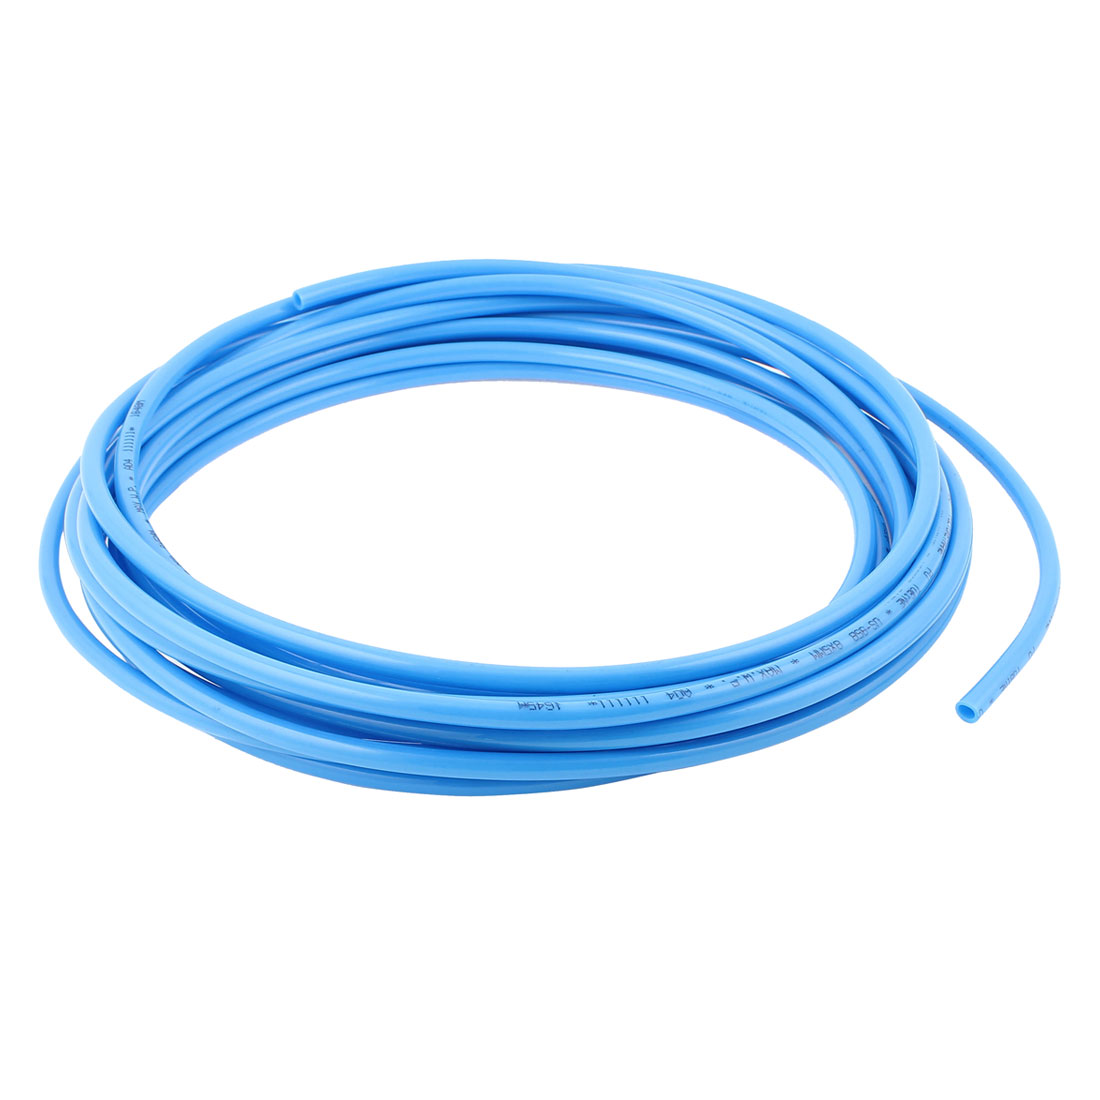 UXCELL 8Mm X 5Mm Pneumatic Air Compressor Tubing Pu Hose Tube Pipe 9.5M Blue beibehang classic feature solid wall paper plain stripe non woven home decor papel de parede 3d wallpaper roll for bedroom white